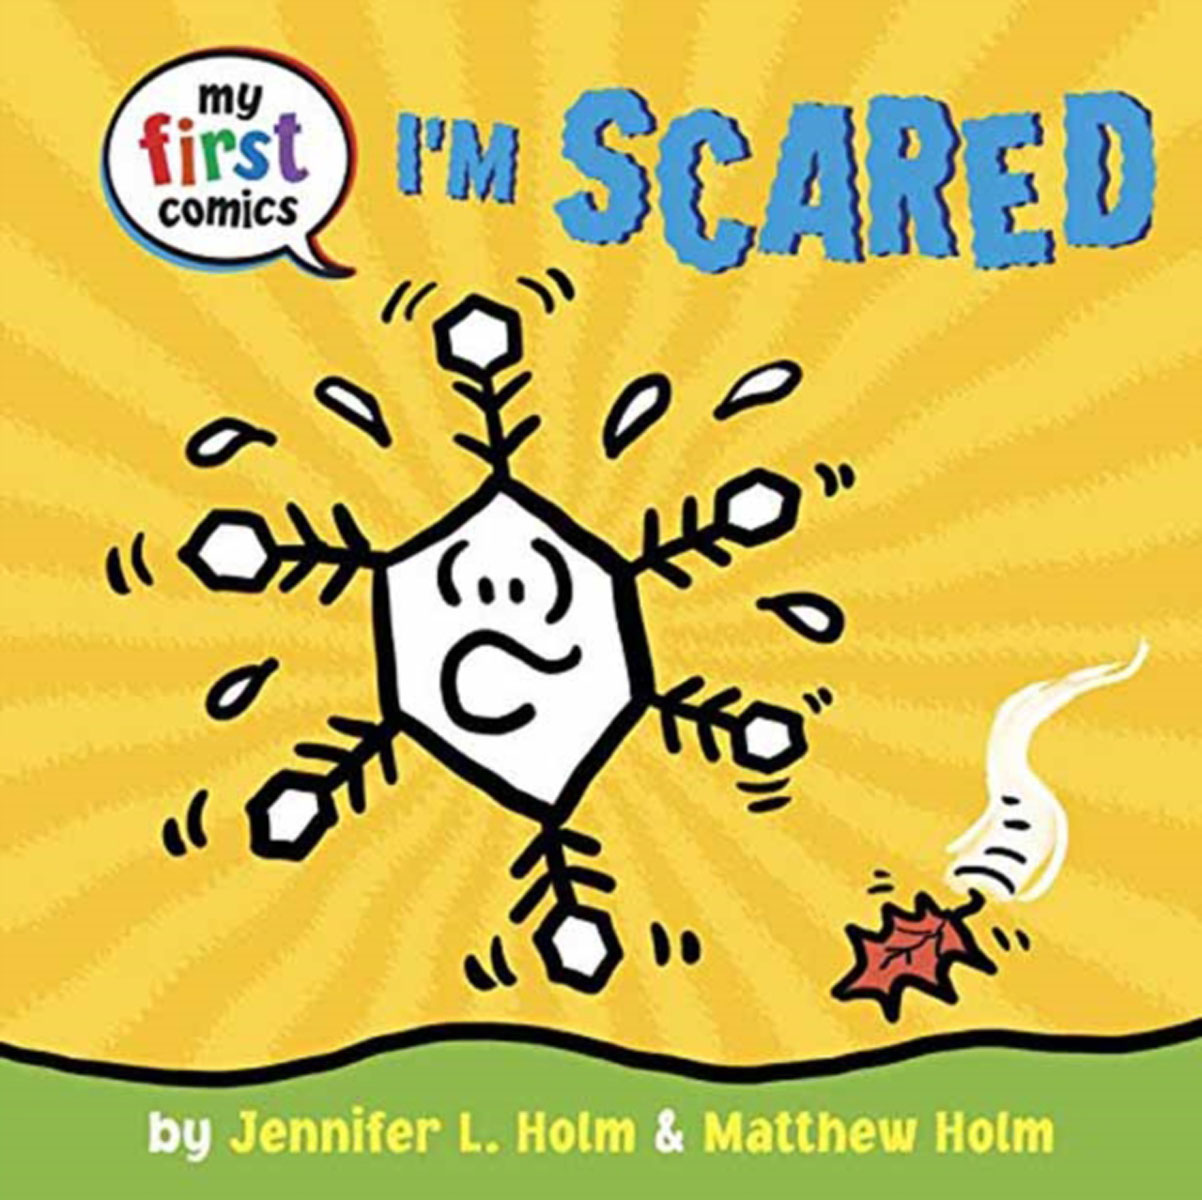 I'm Scared (My First Comics) karin kukkonen studying comics and graphic novels